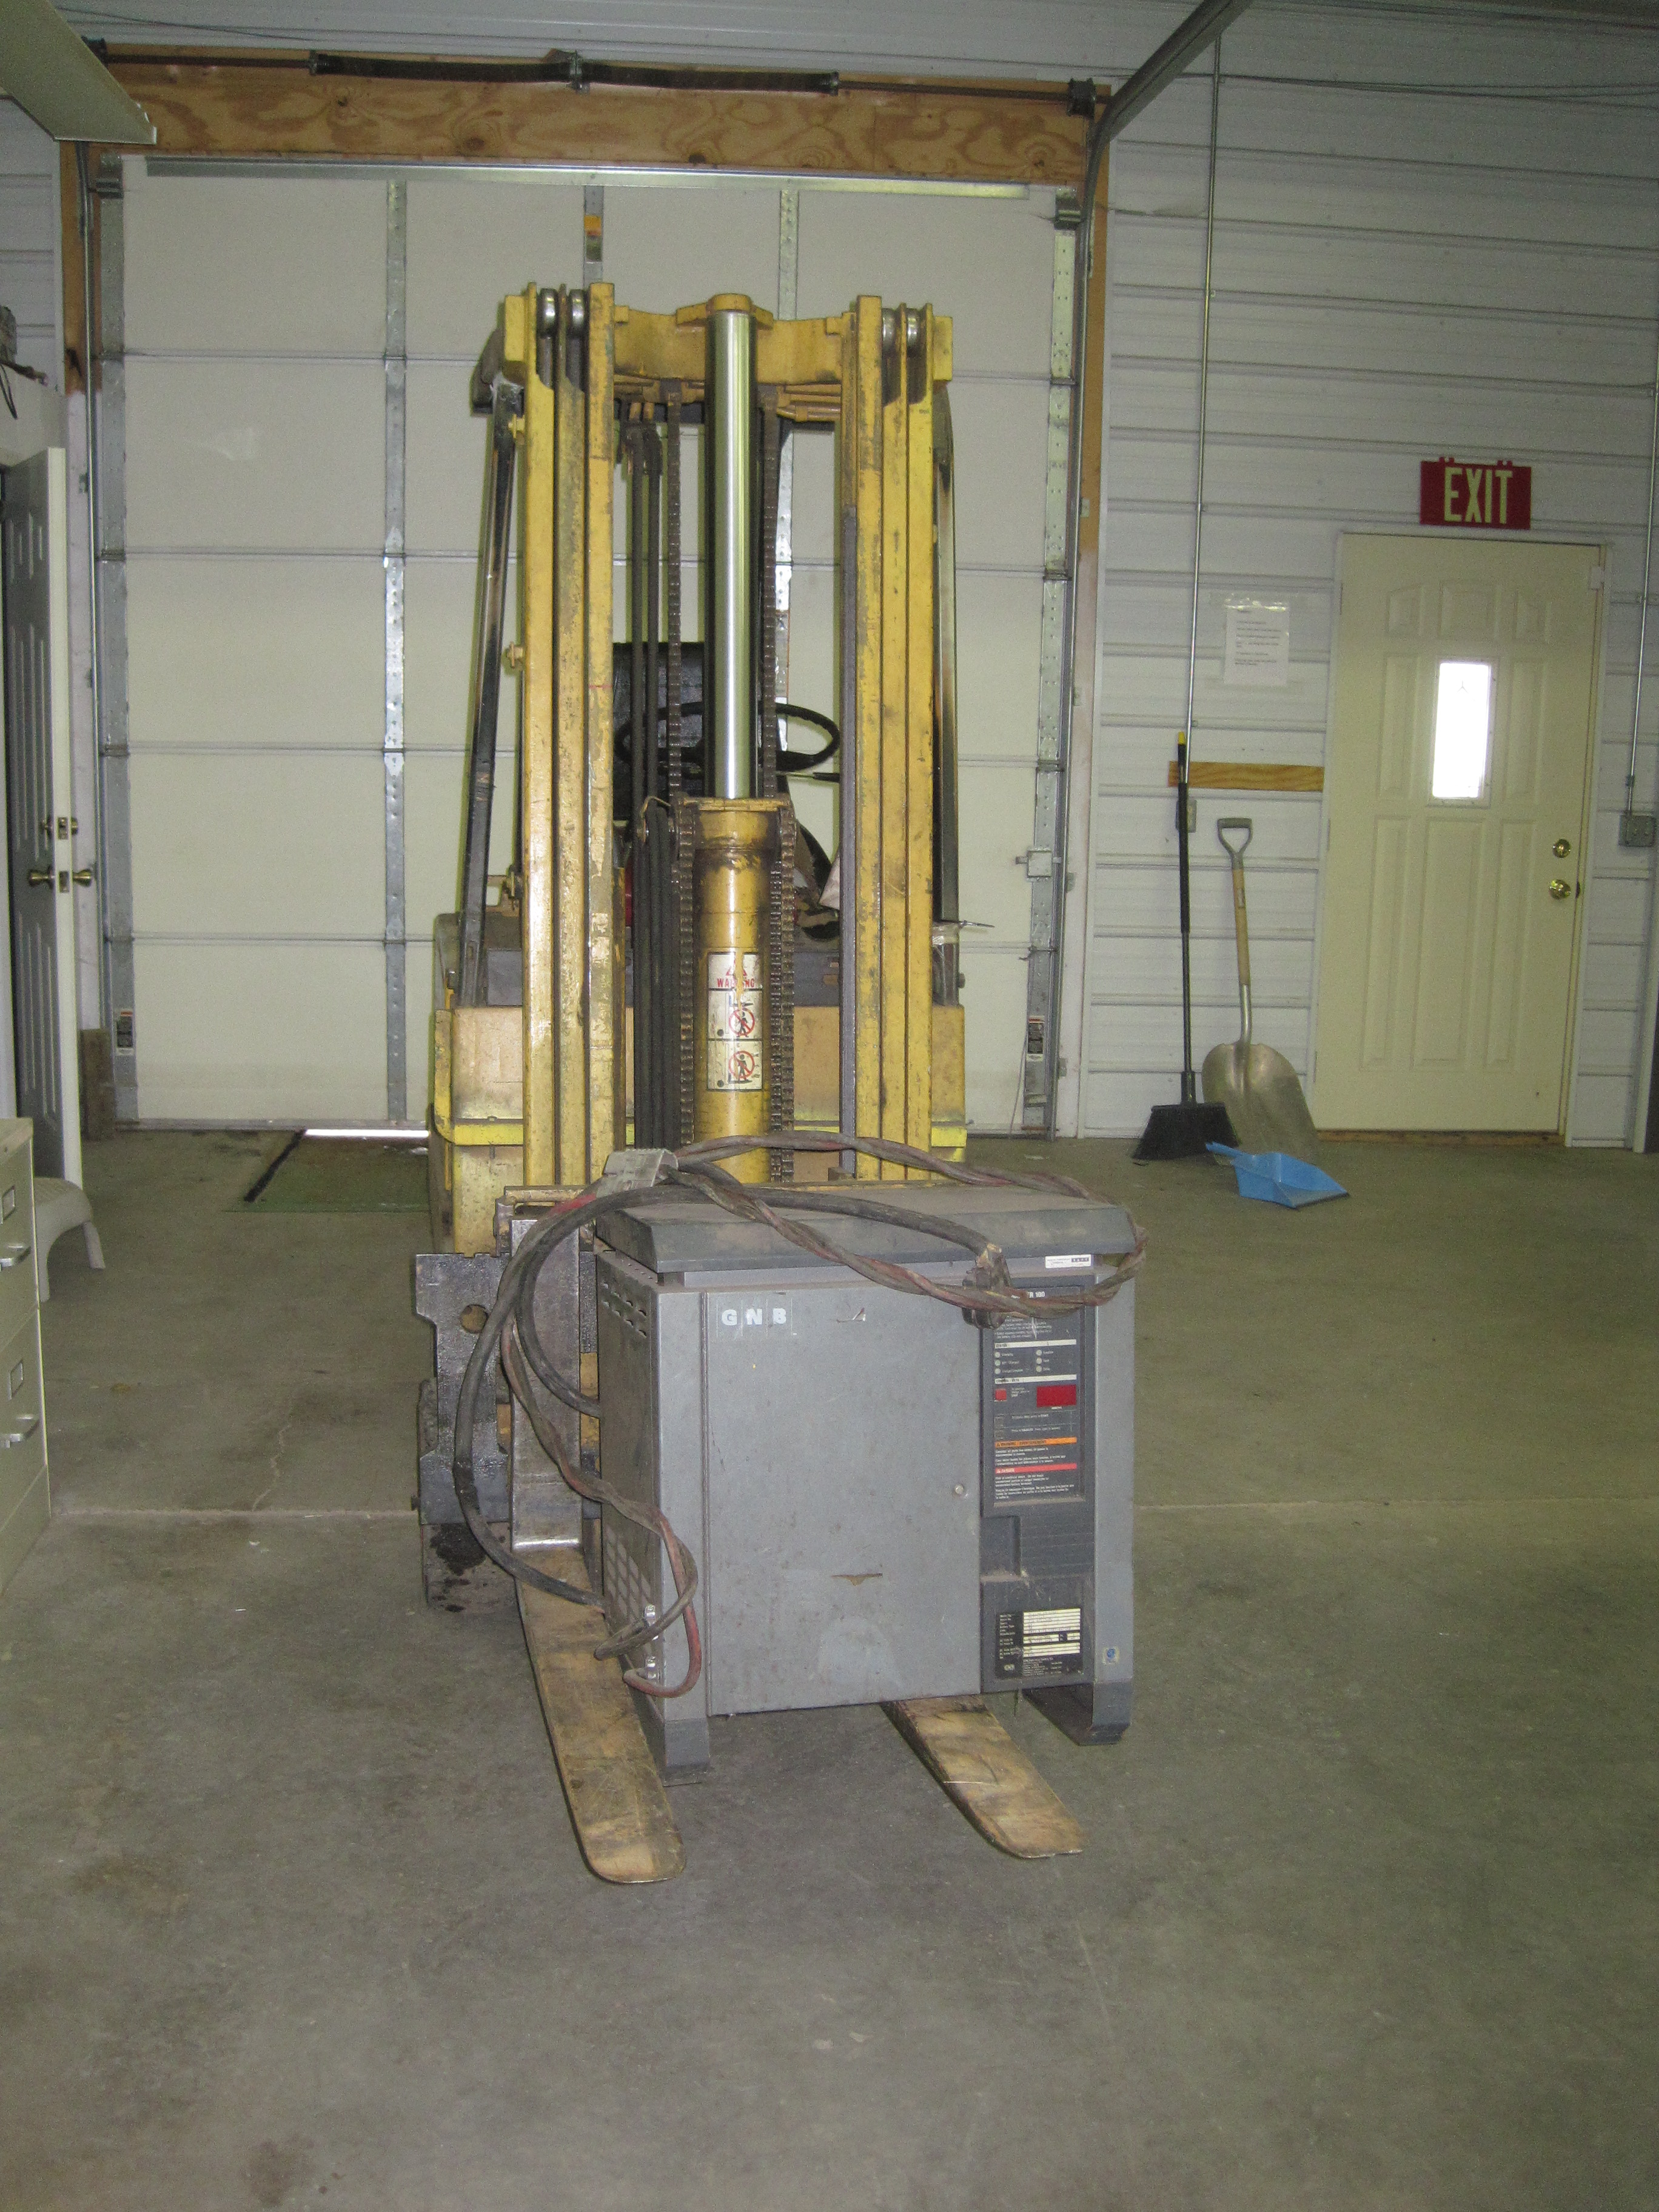 In March 2010, we are moving into a new building. For the first time, we will be on the ground floor of a building. So a forklift is in order.